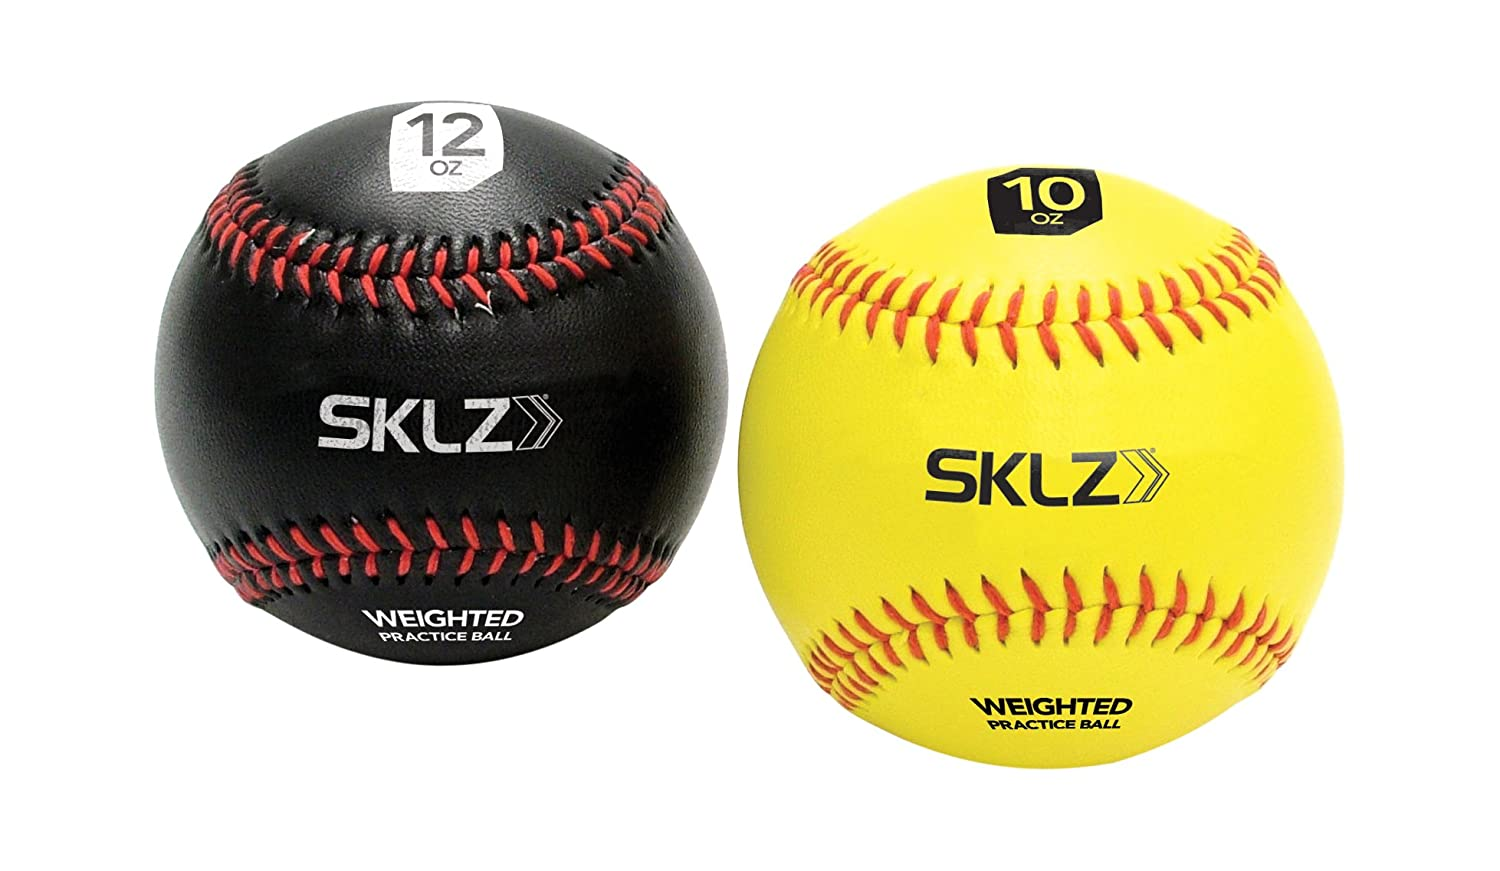 SKLZ - Weighted Baseballs 2Pk (Bk/Yw) schwarz 12 oz) Pro Performance WB01-000-04